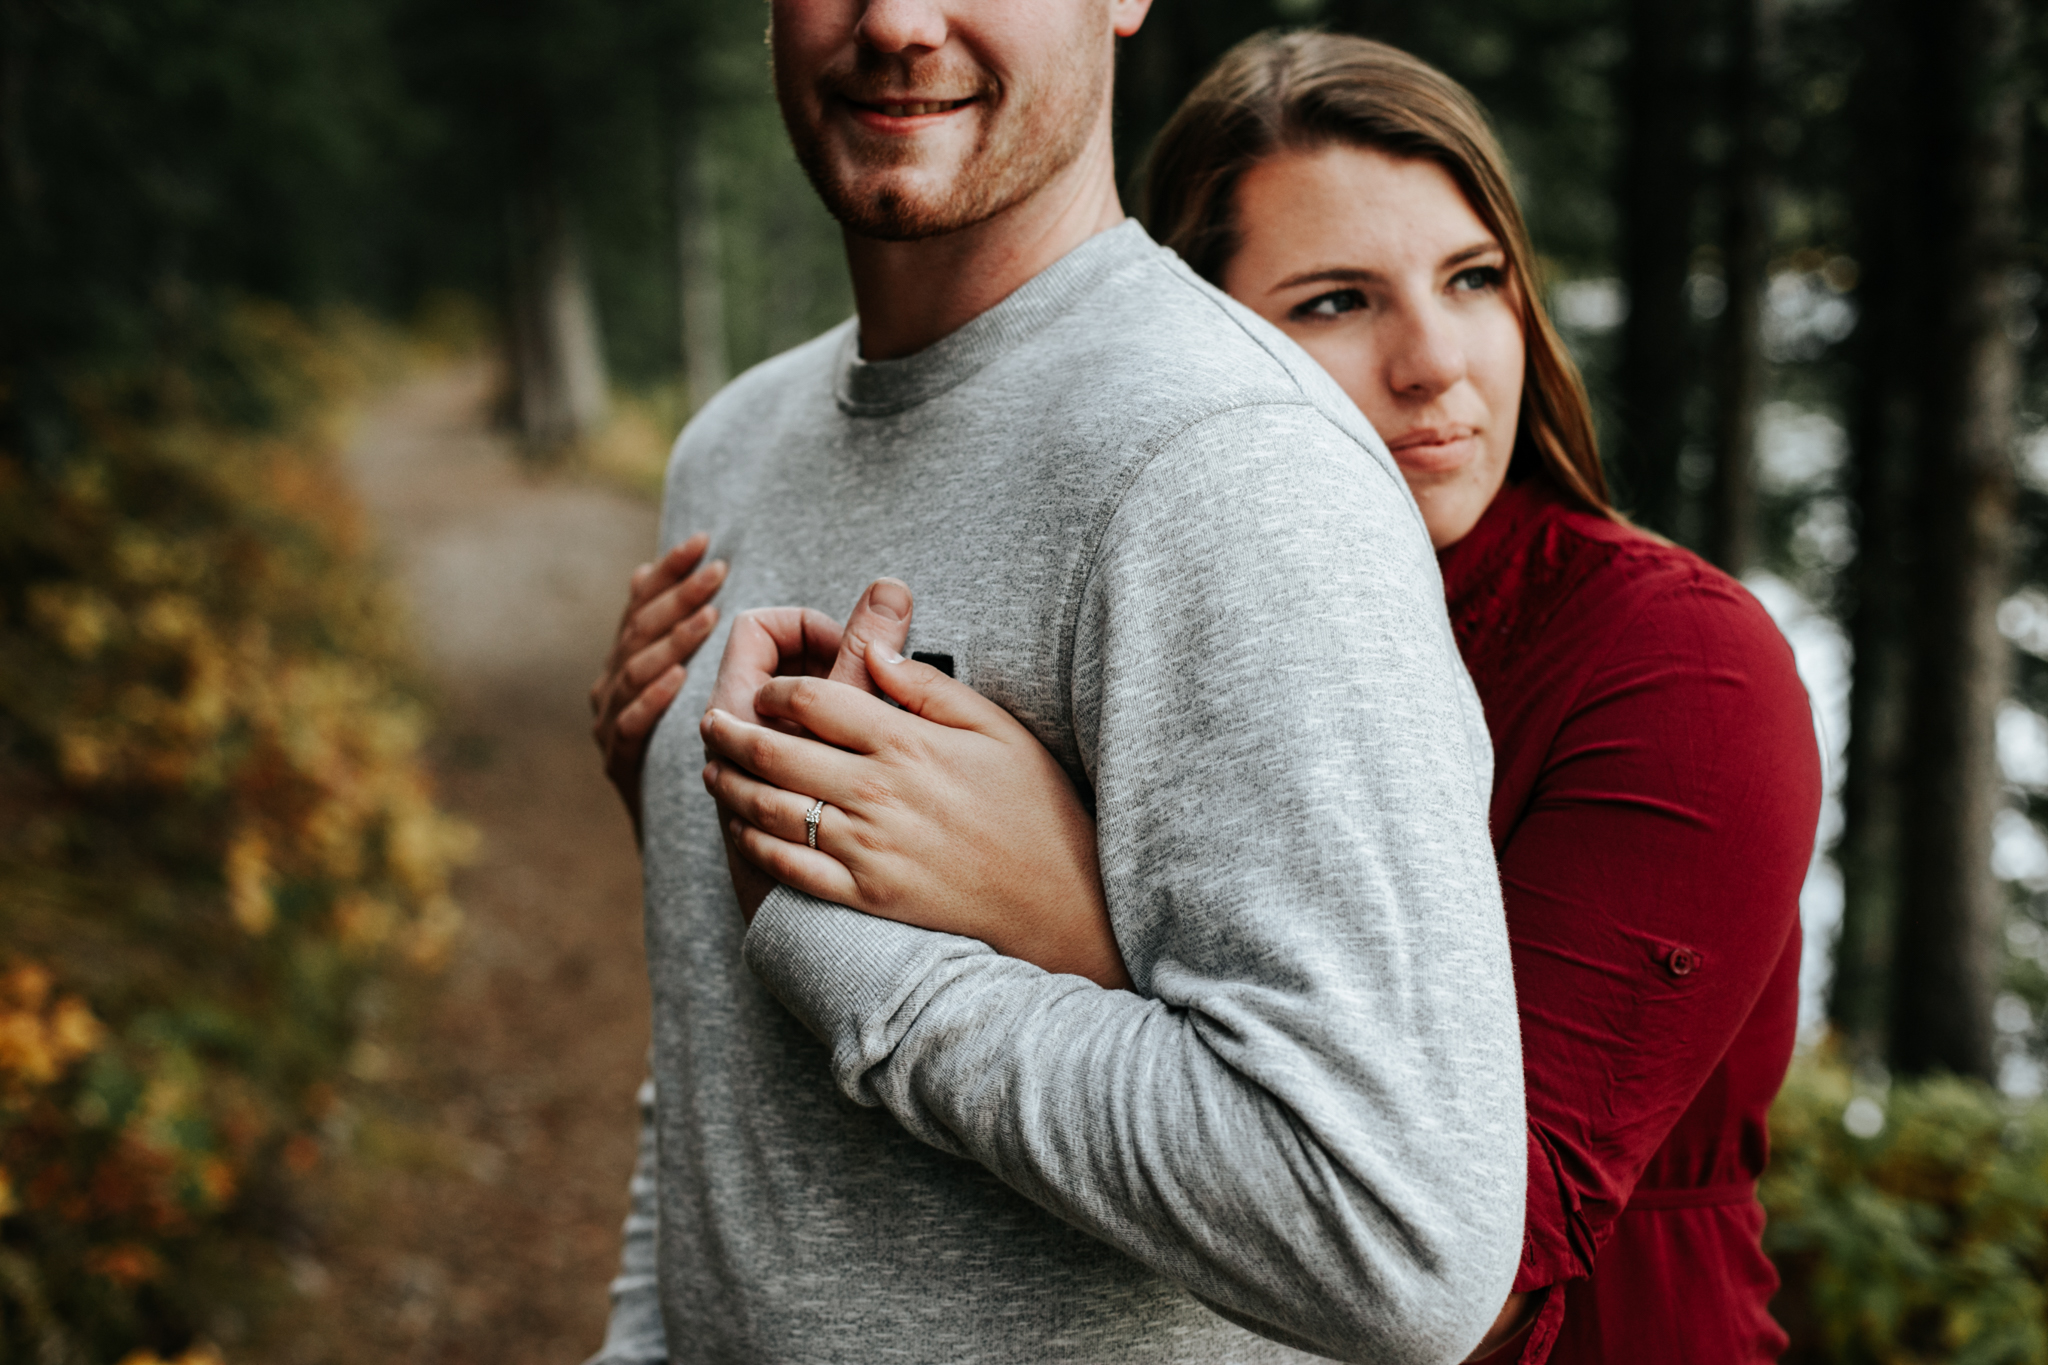 lethbridge-photographer-love-and-be-loved-photography-crowsnest-pass-engagement-andi-philip-picture-image-photo--38.jpg